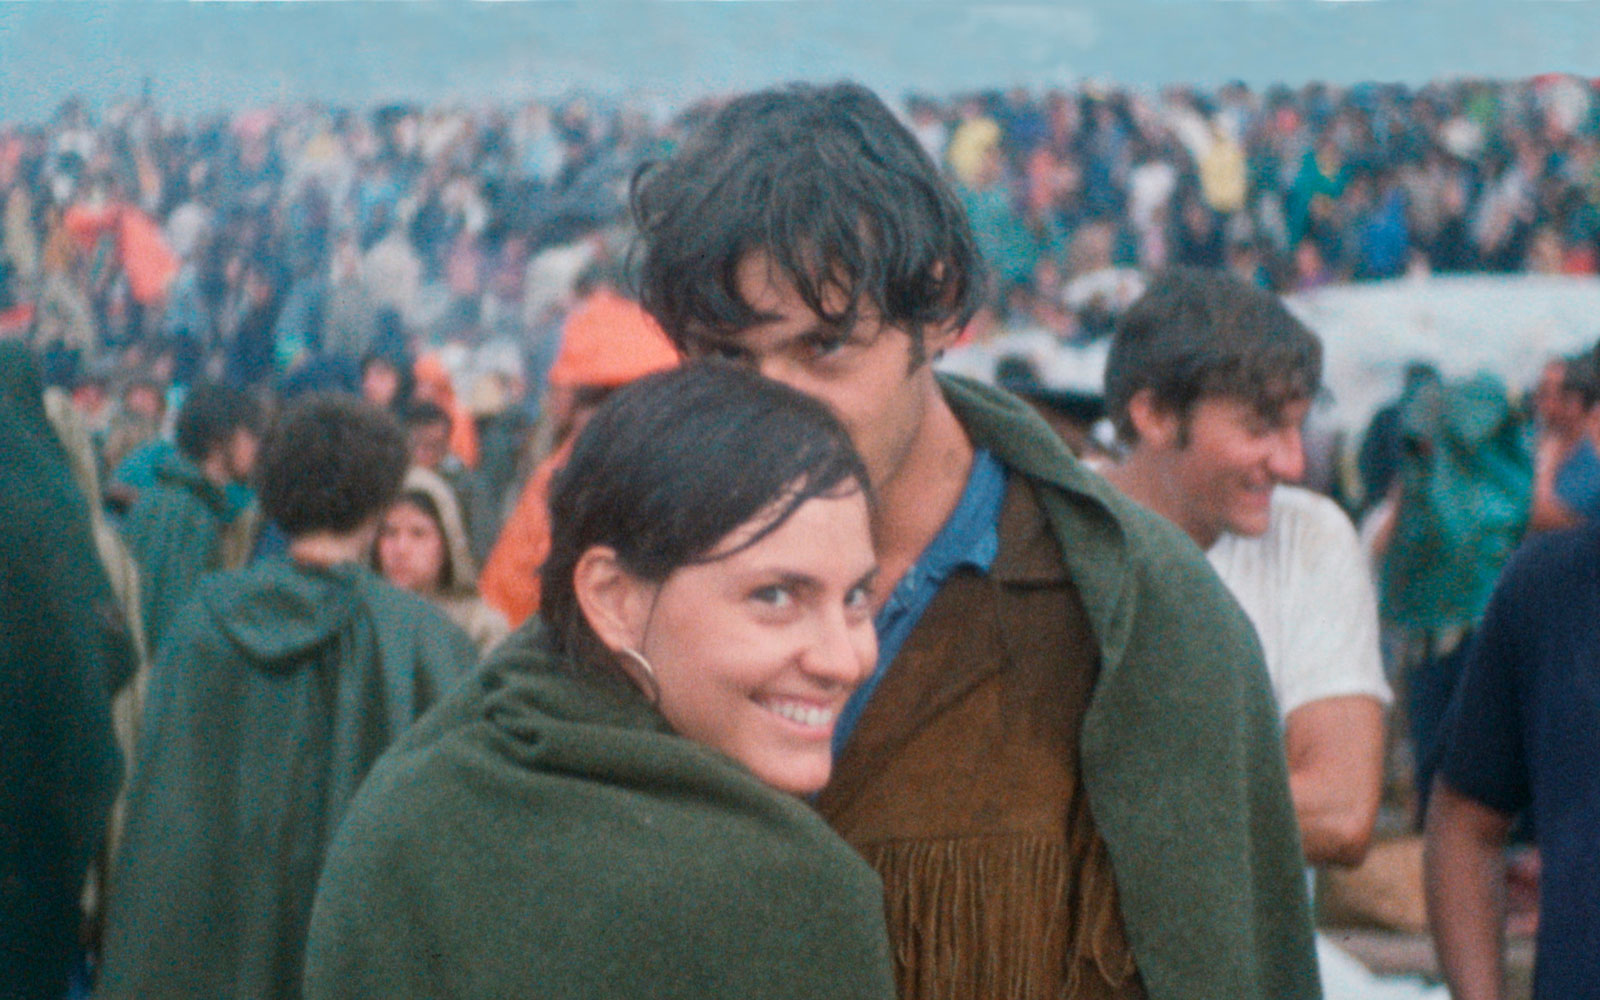 This Couple Met at Woodstock. 50 Years Later, They Found a Photo of Their First Hours Together